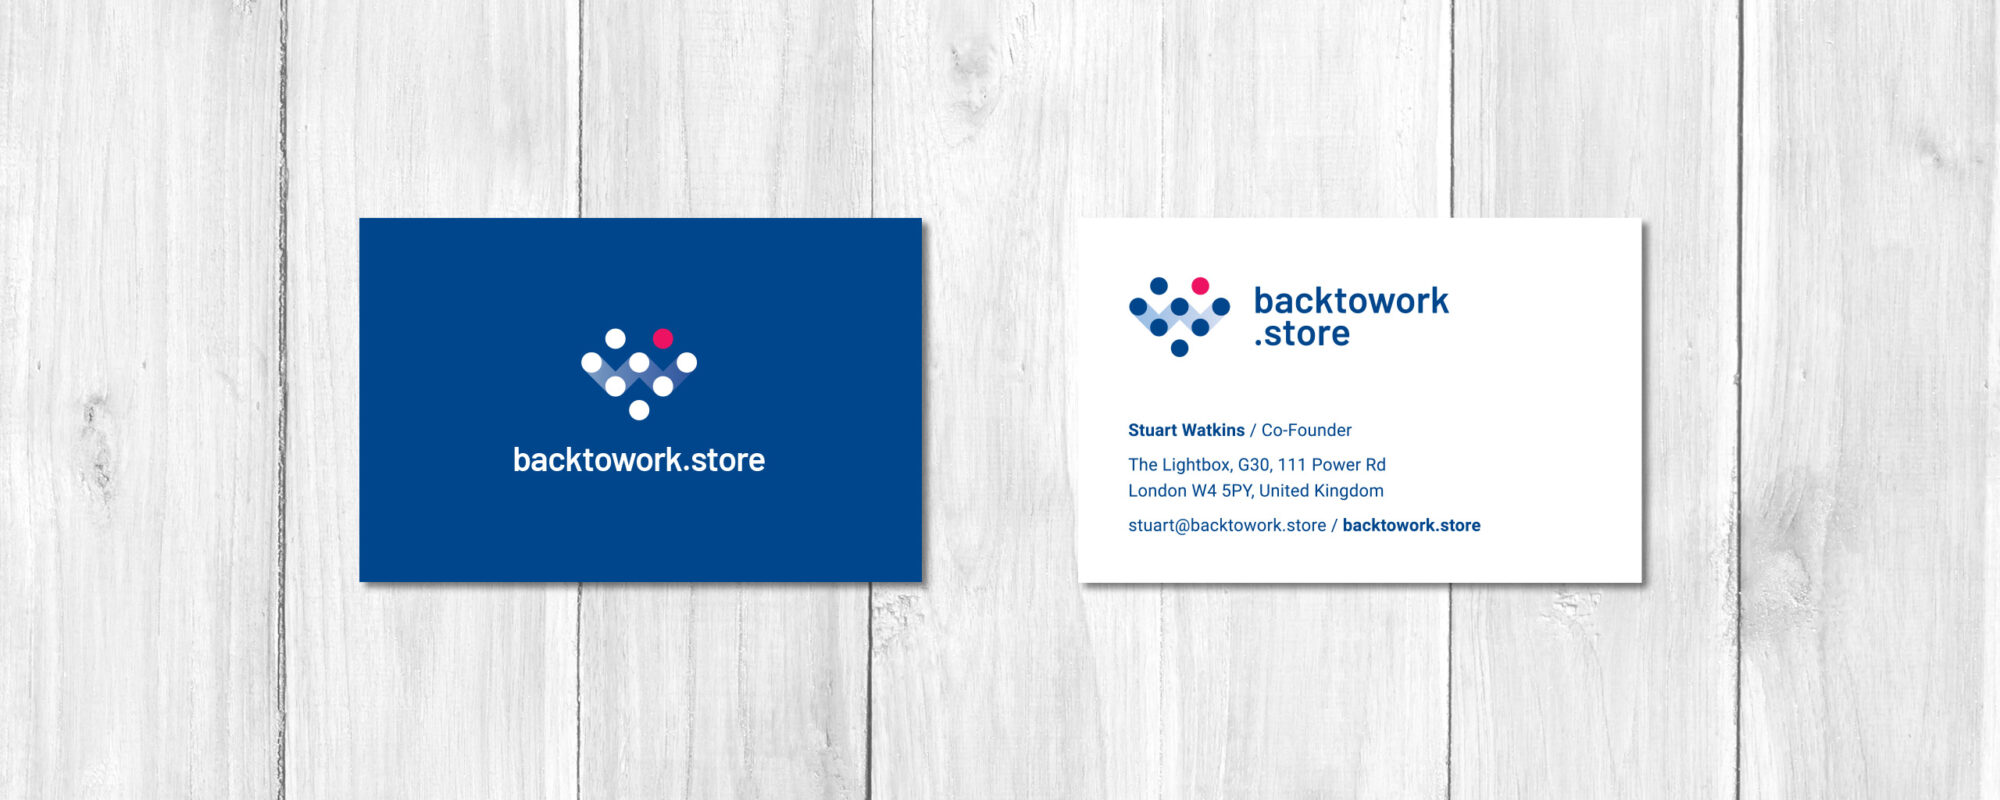 Back to Work Store Business Card Design